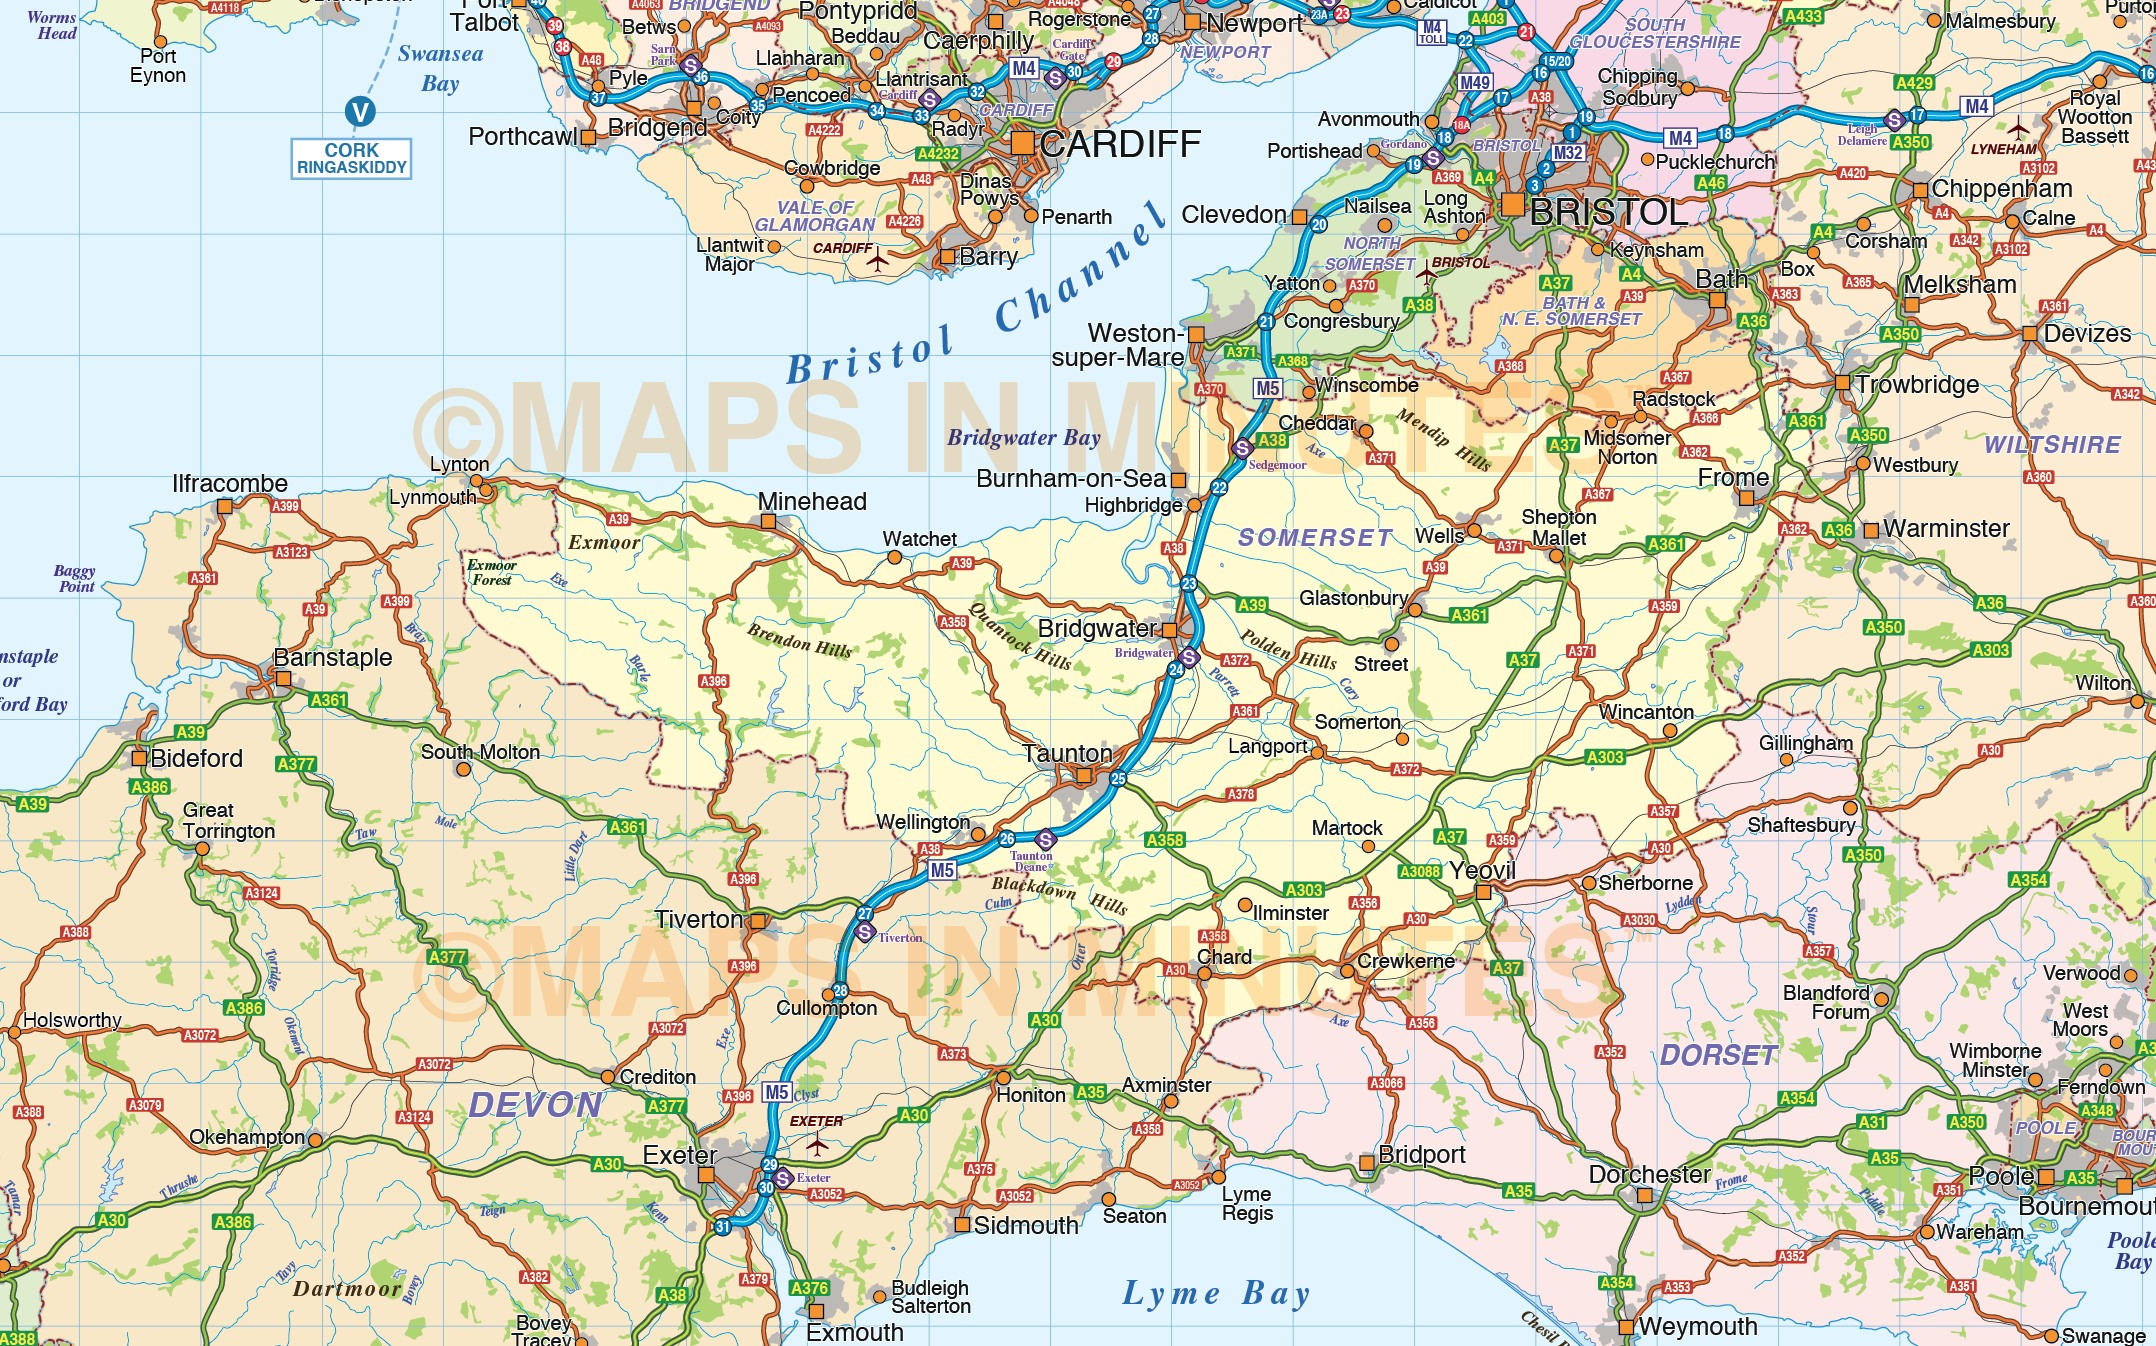 South West England County Road And Rail Map At M Scale In - Downloadable us road map